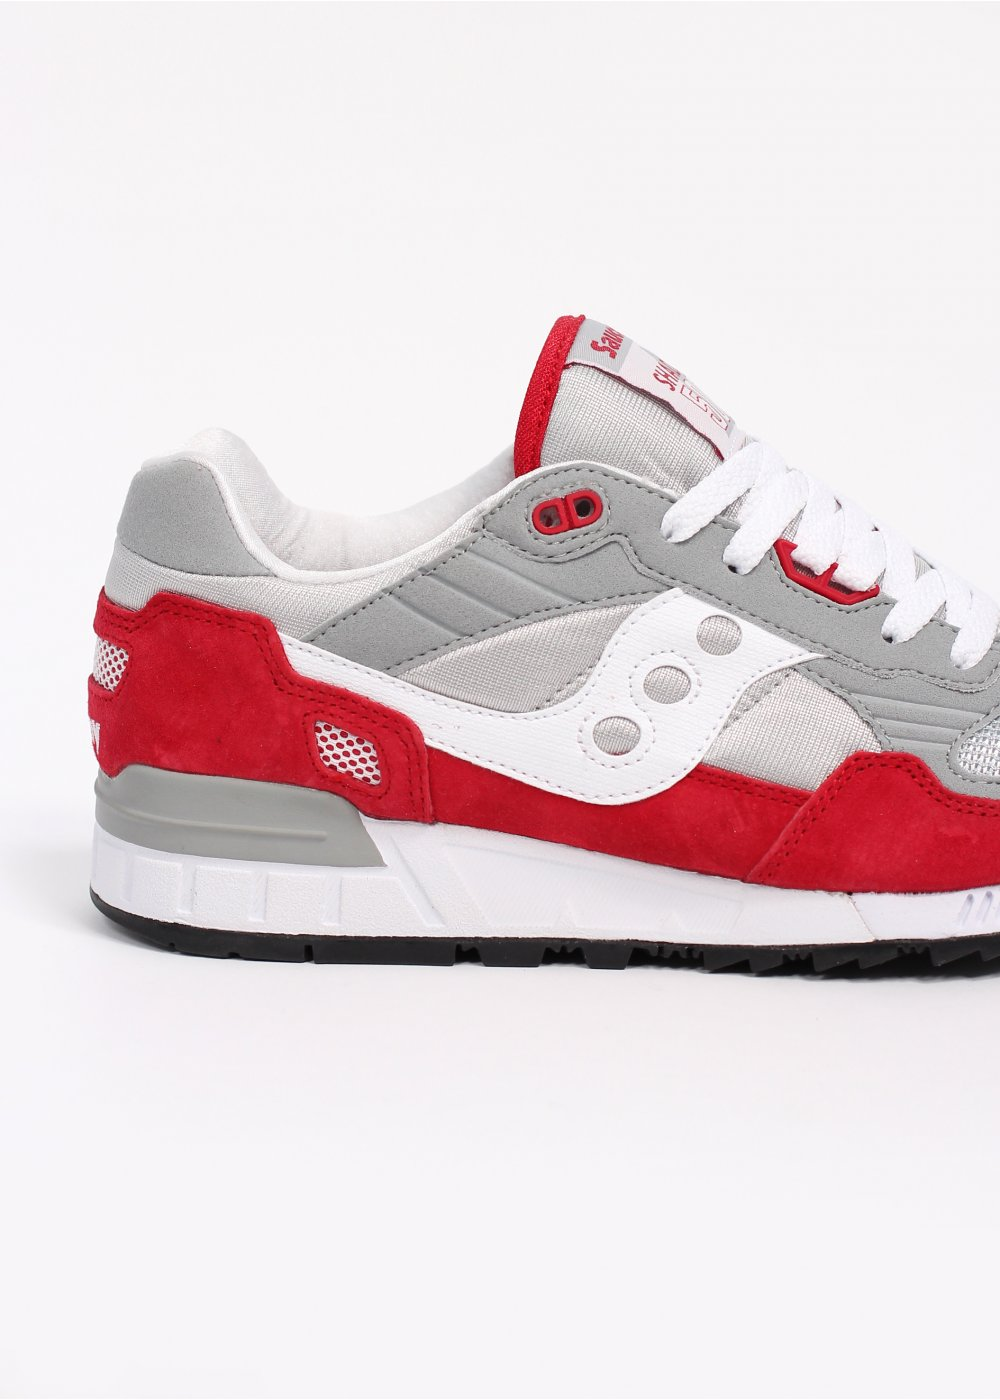 sale retailer 54a35 8c383 Saucony Shadow 5000 OG Premium Trainers - Grey / Red